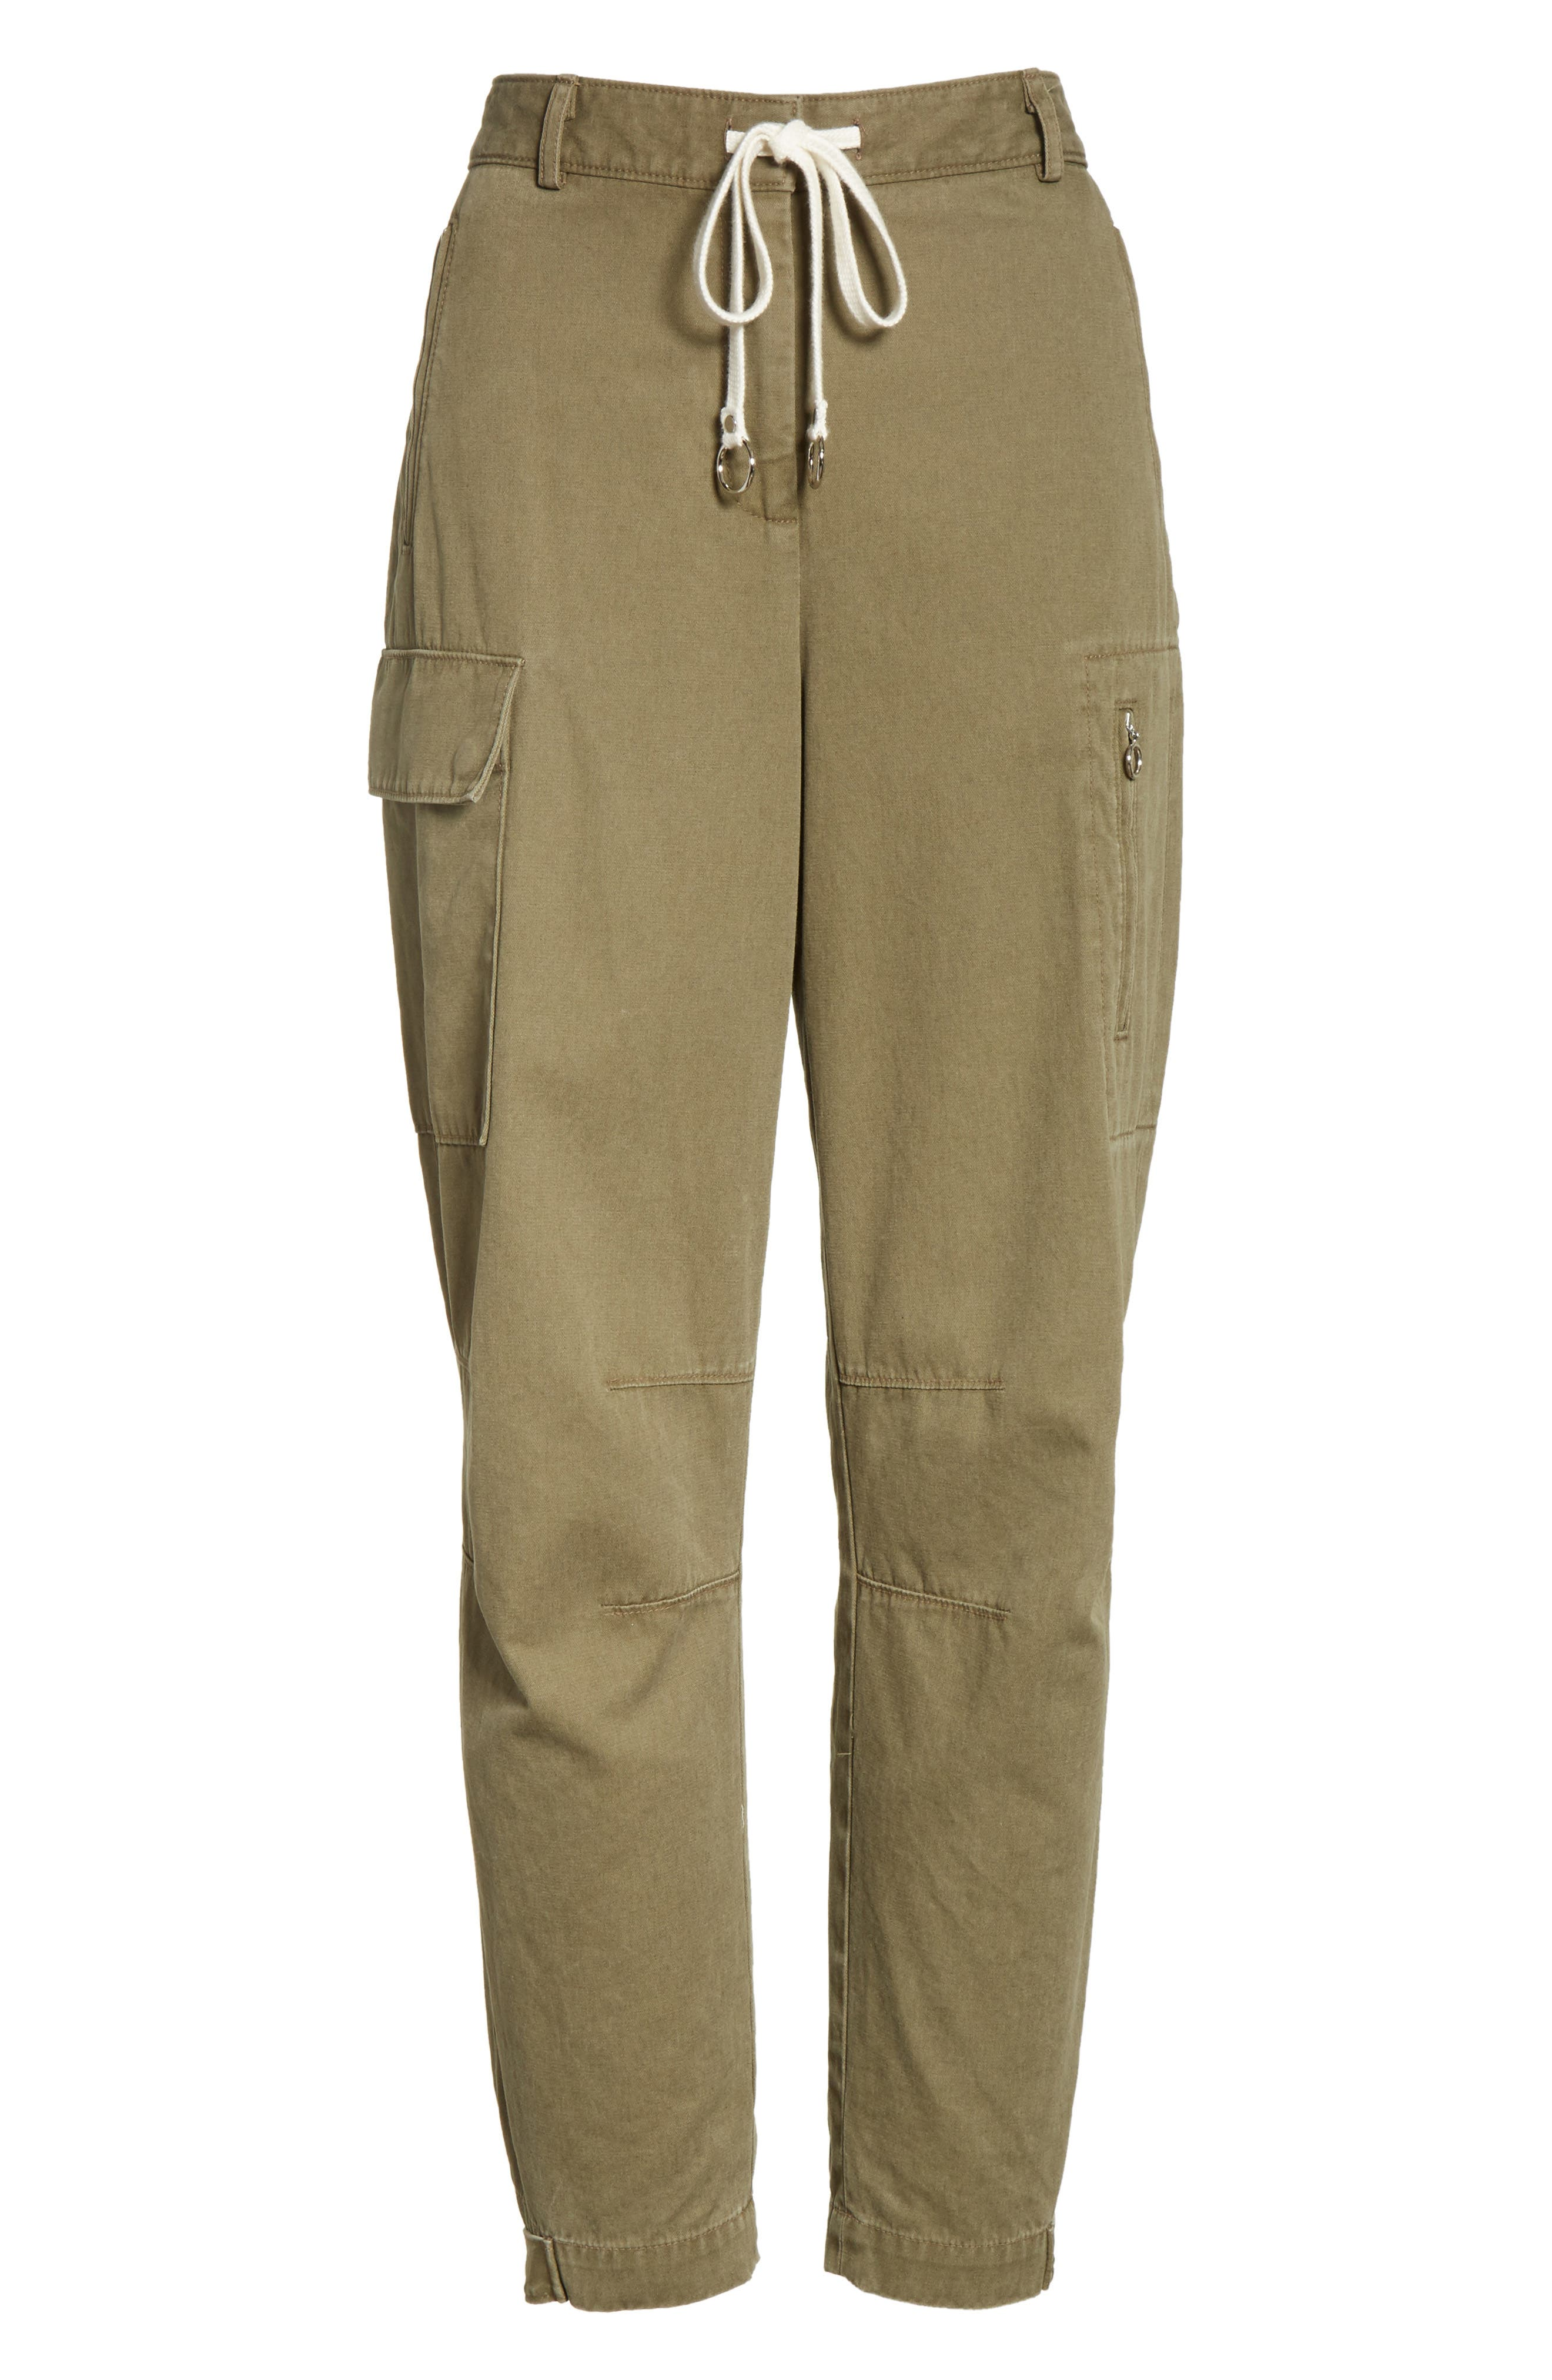 Twill Cargo Pants,                             Alternate thumbnail 6, color,                             Cargo